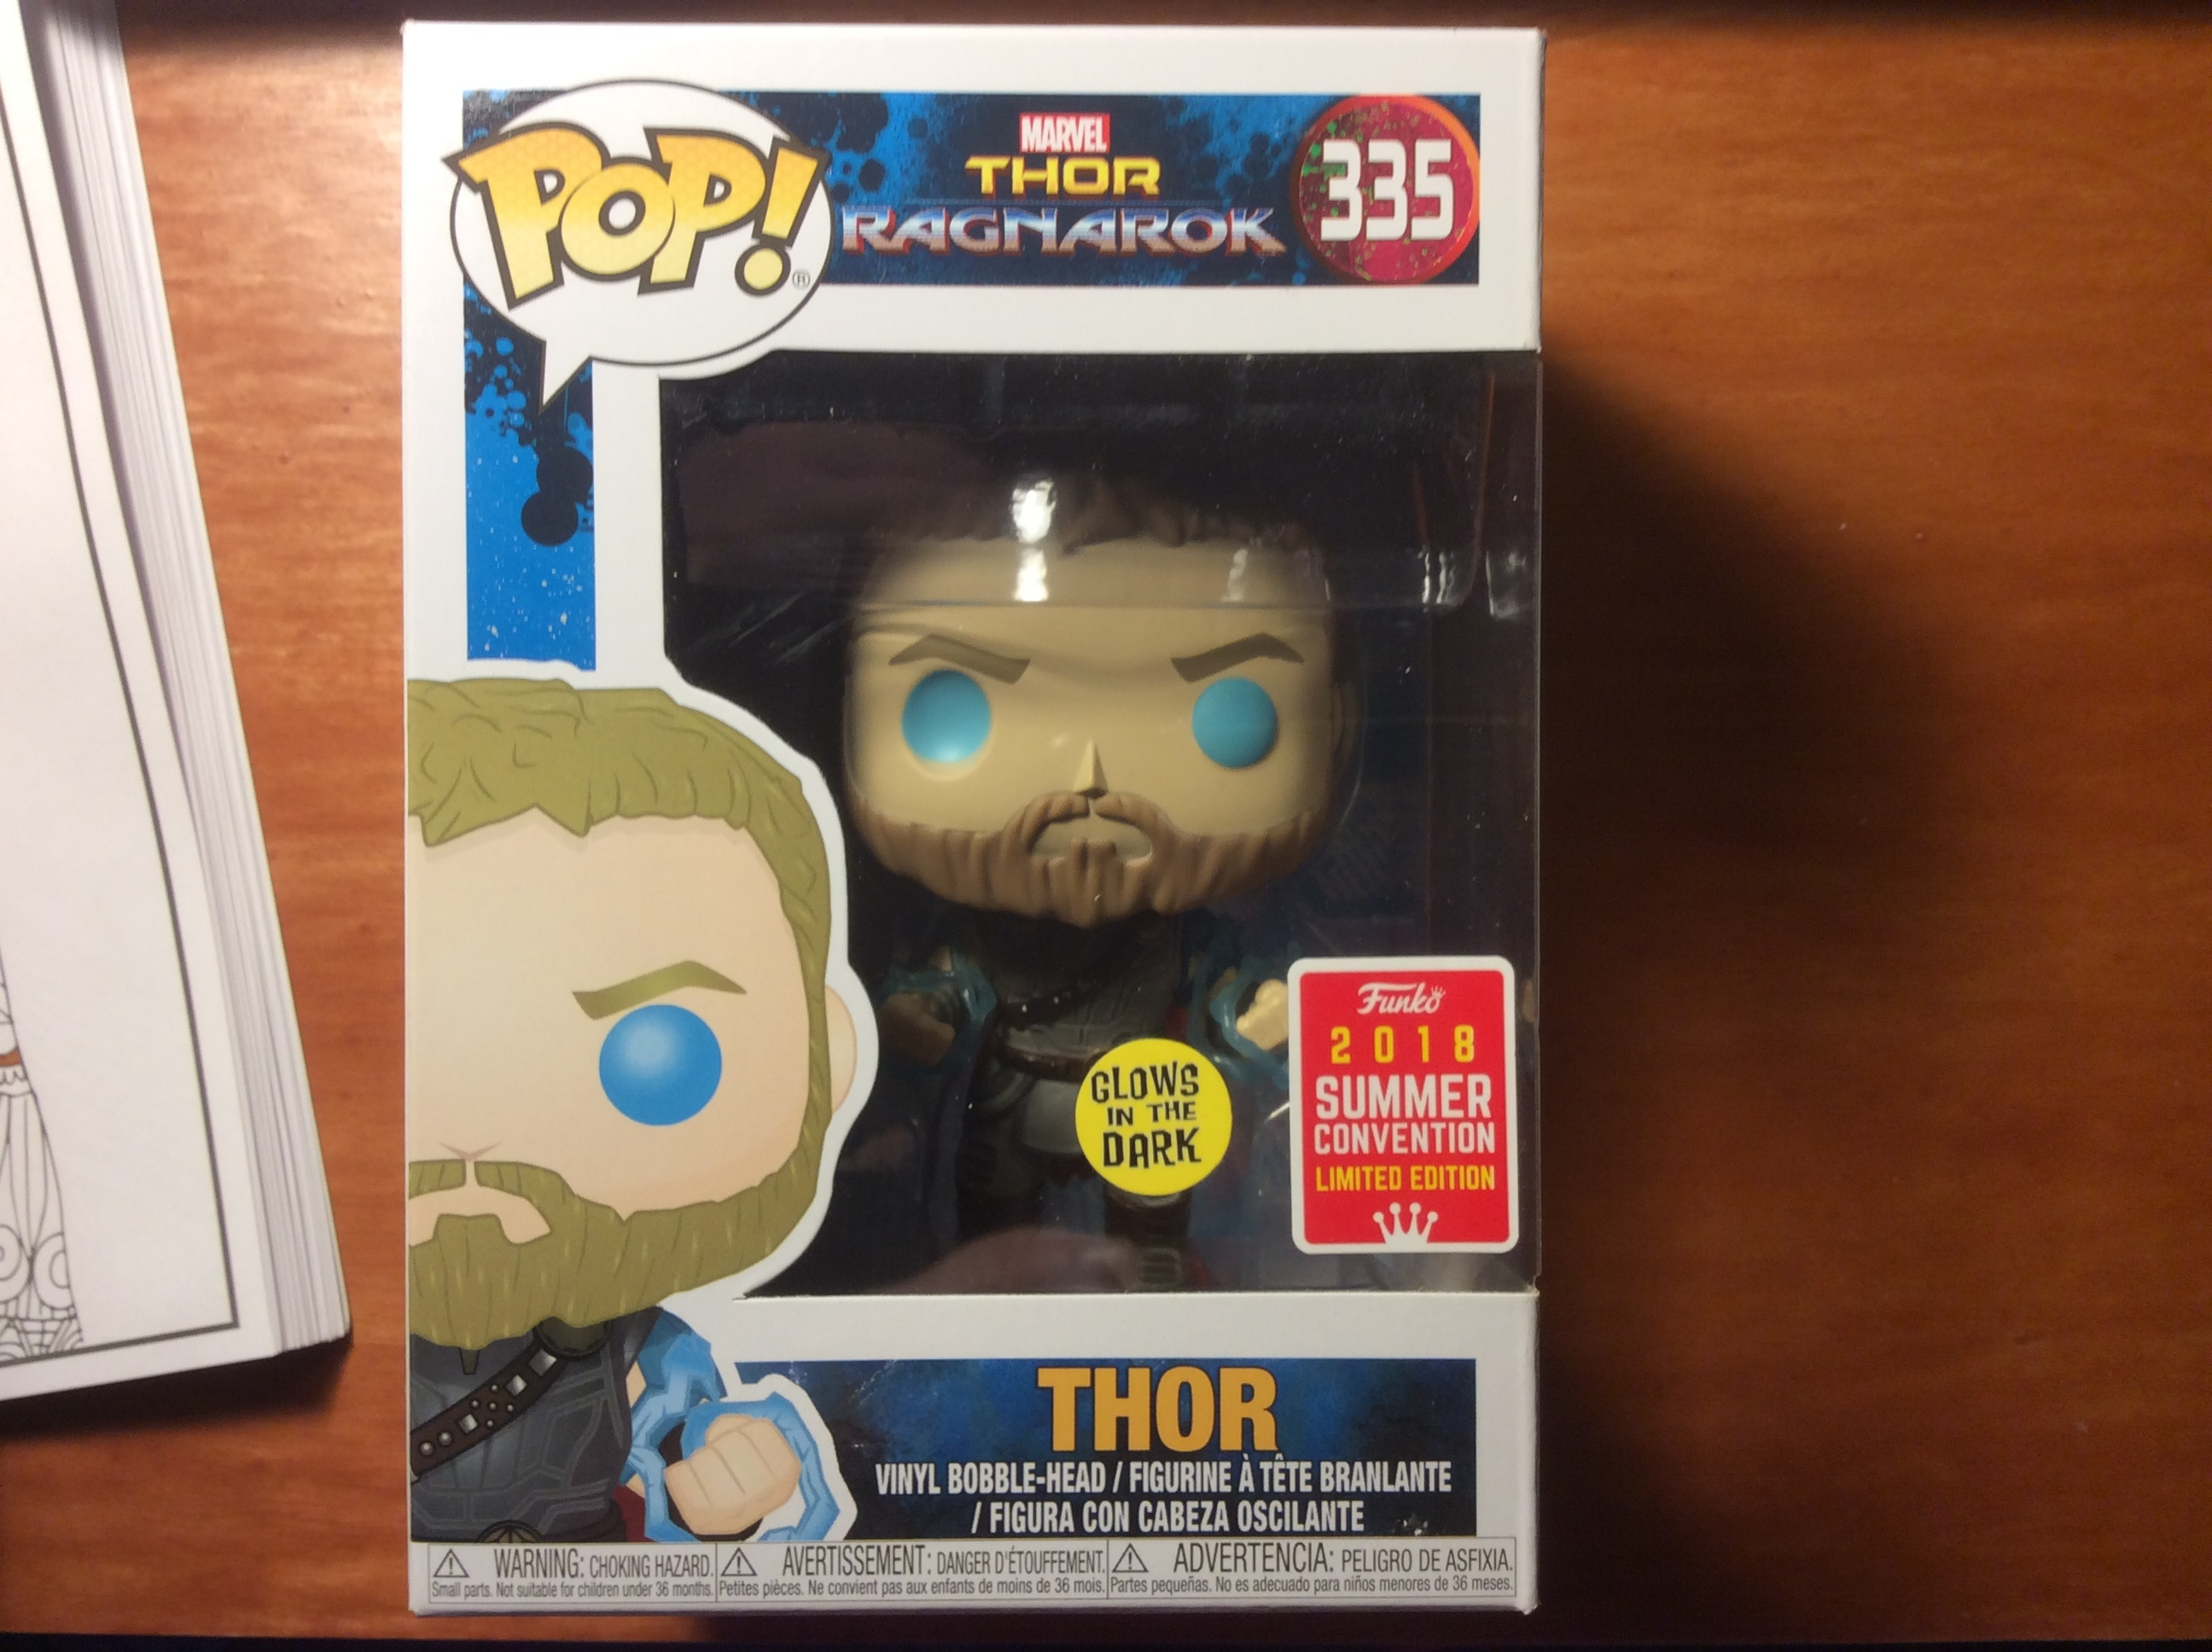 Thor Odin Force Summer Convention The Hobbydb Marketplace